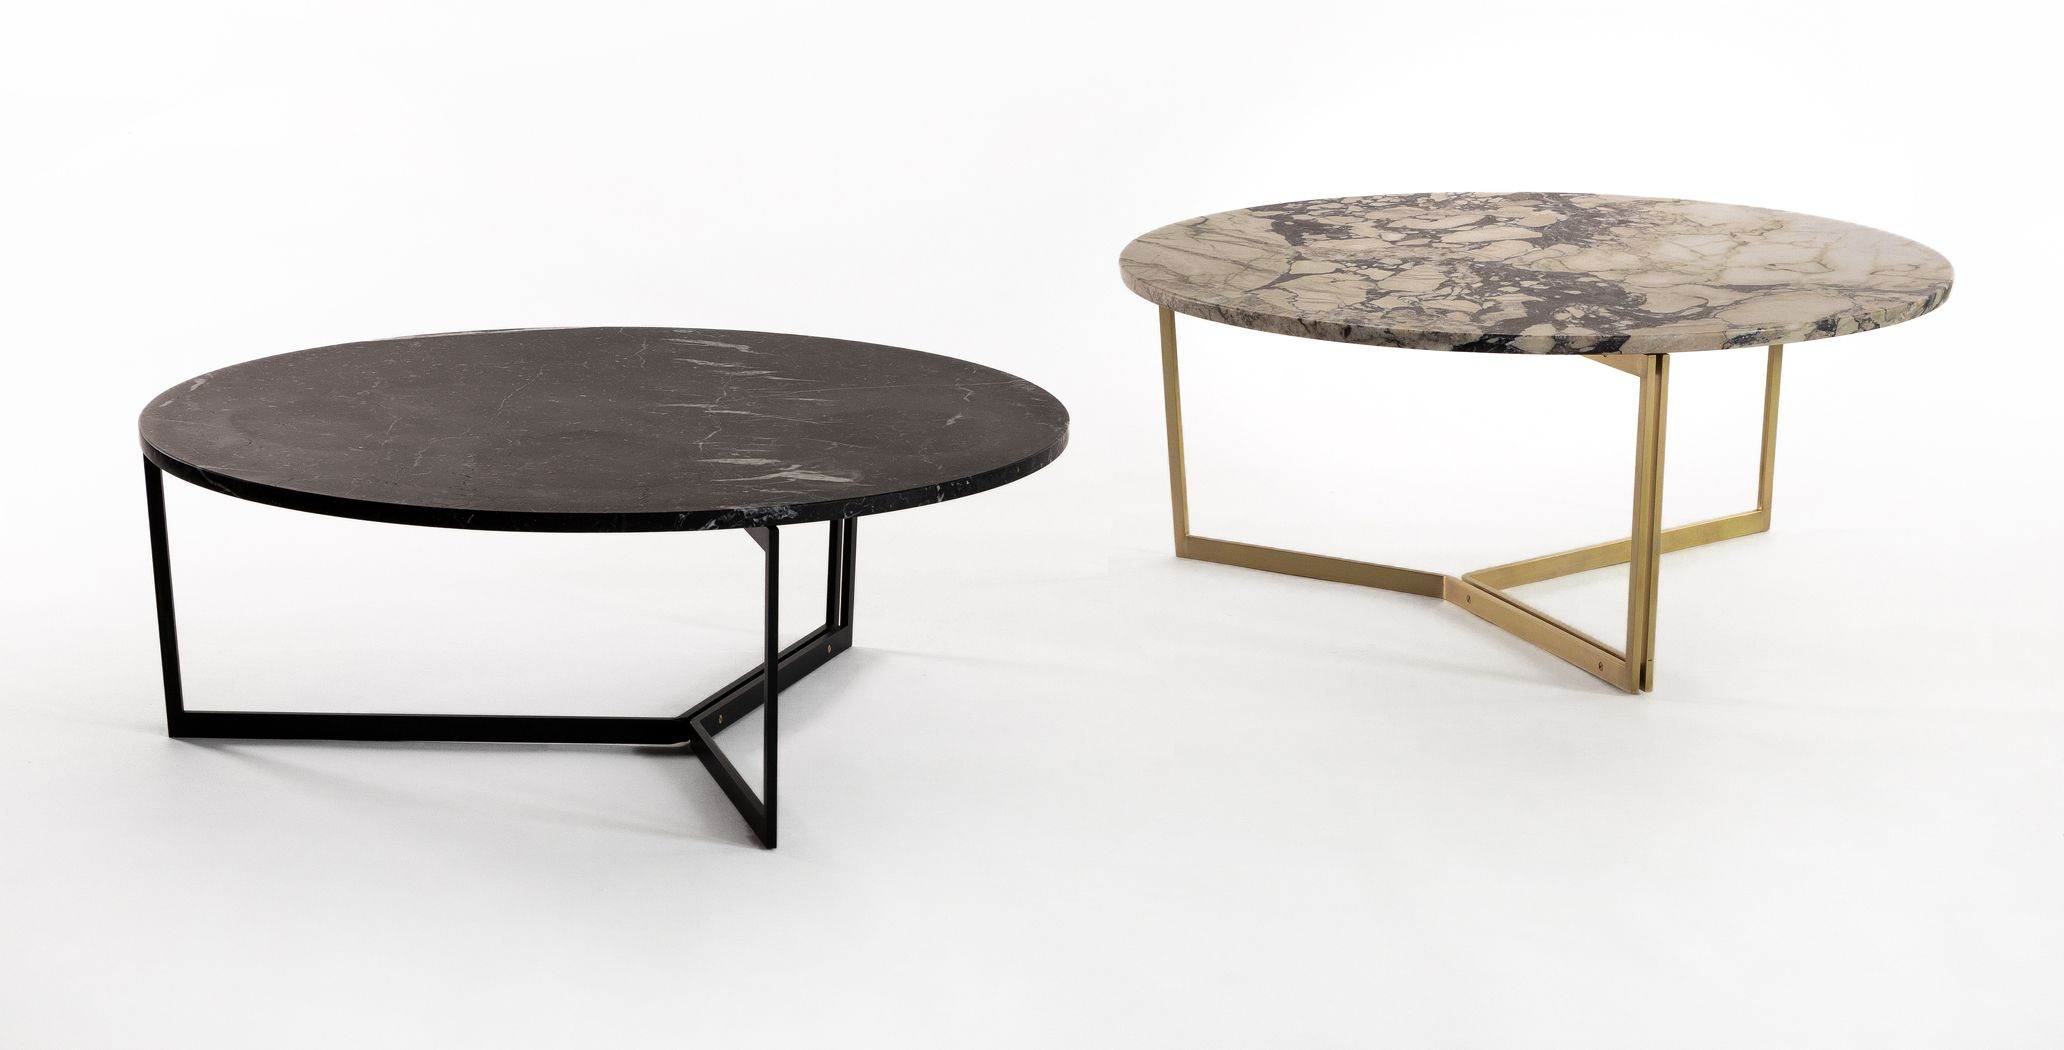 The At14 Coffee Table With Sleek Steel Base Available In A Variety Of Tops Including Marble And Solid Hard Coffee Table System Furniture Minimalist Furniture [ jpg ]